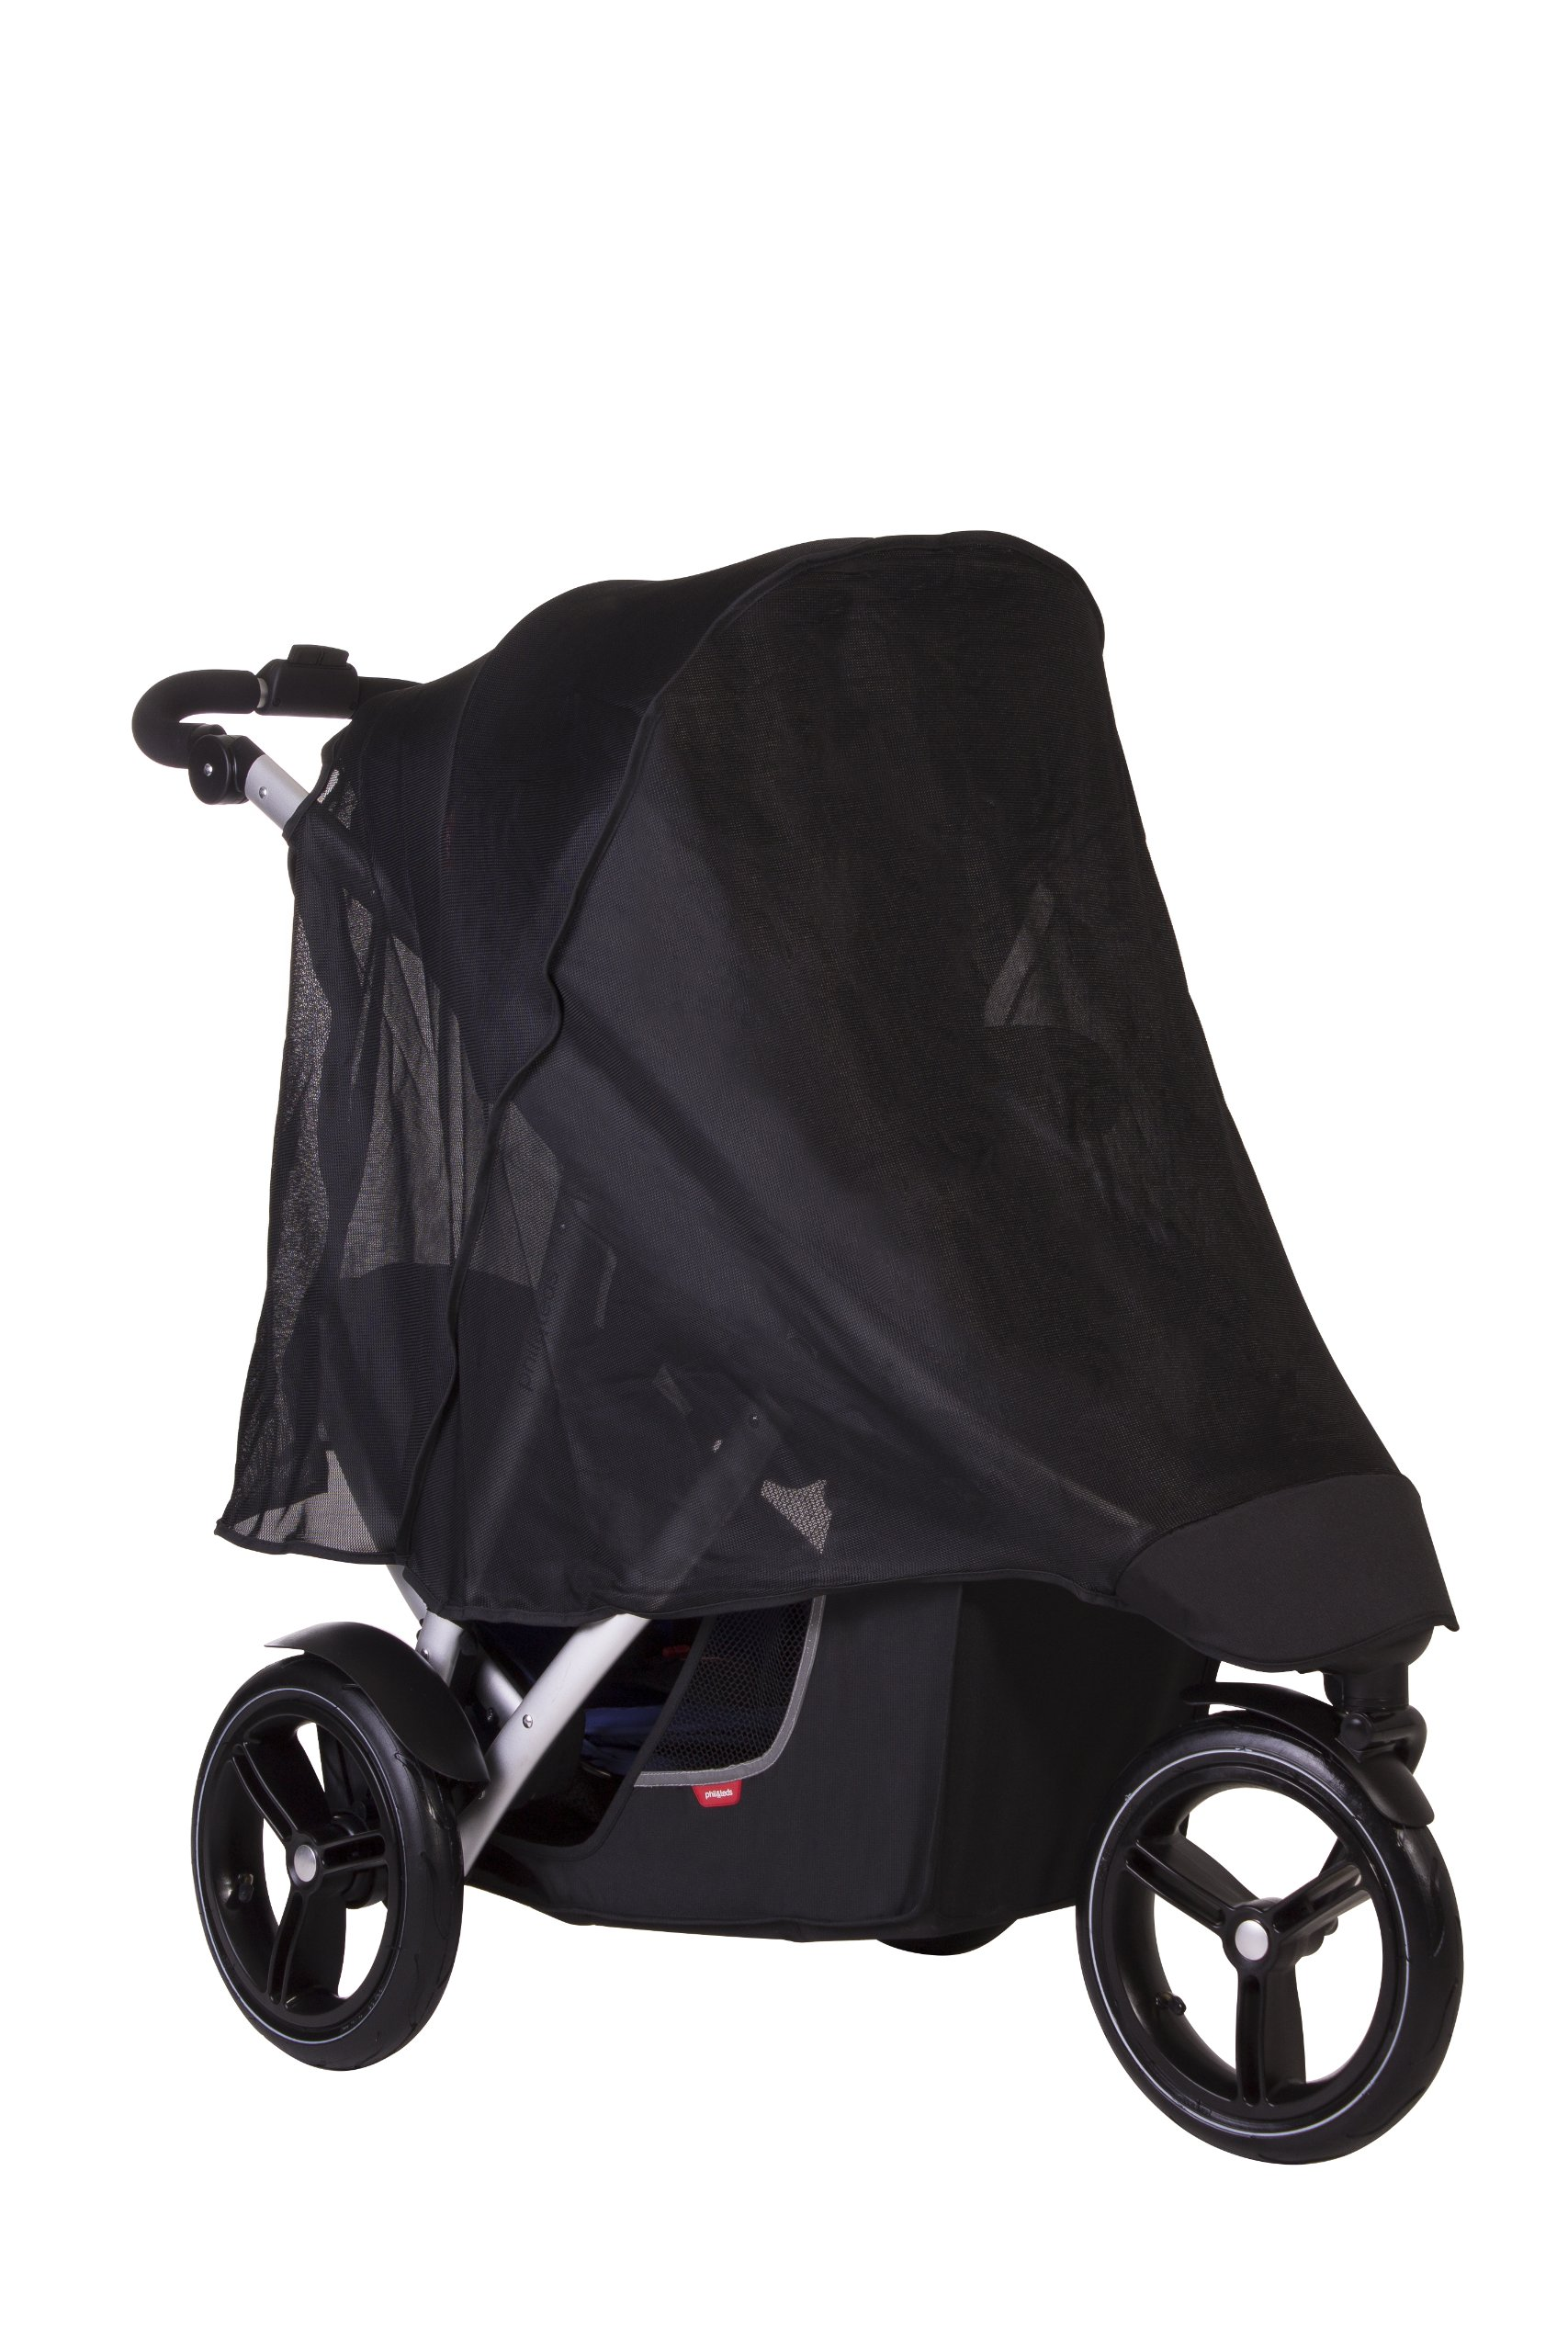 phil&teds UV Sunny Days Mesh Cover for Vibe and Verve Strollers, Double by phil&teds